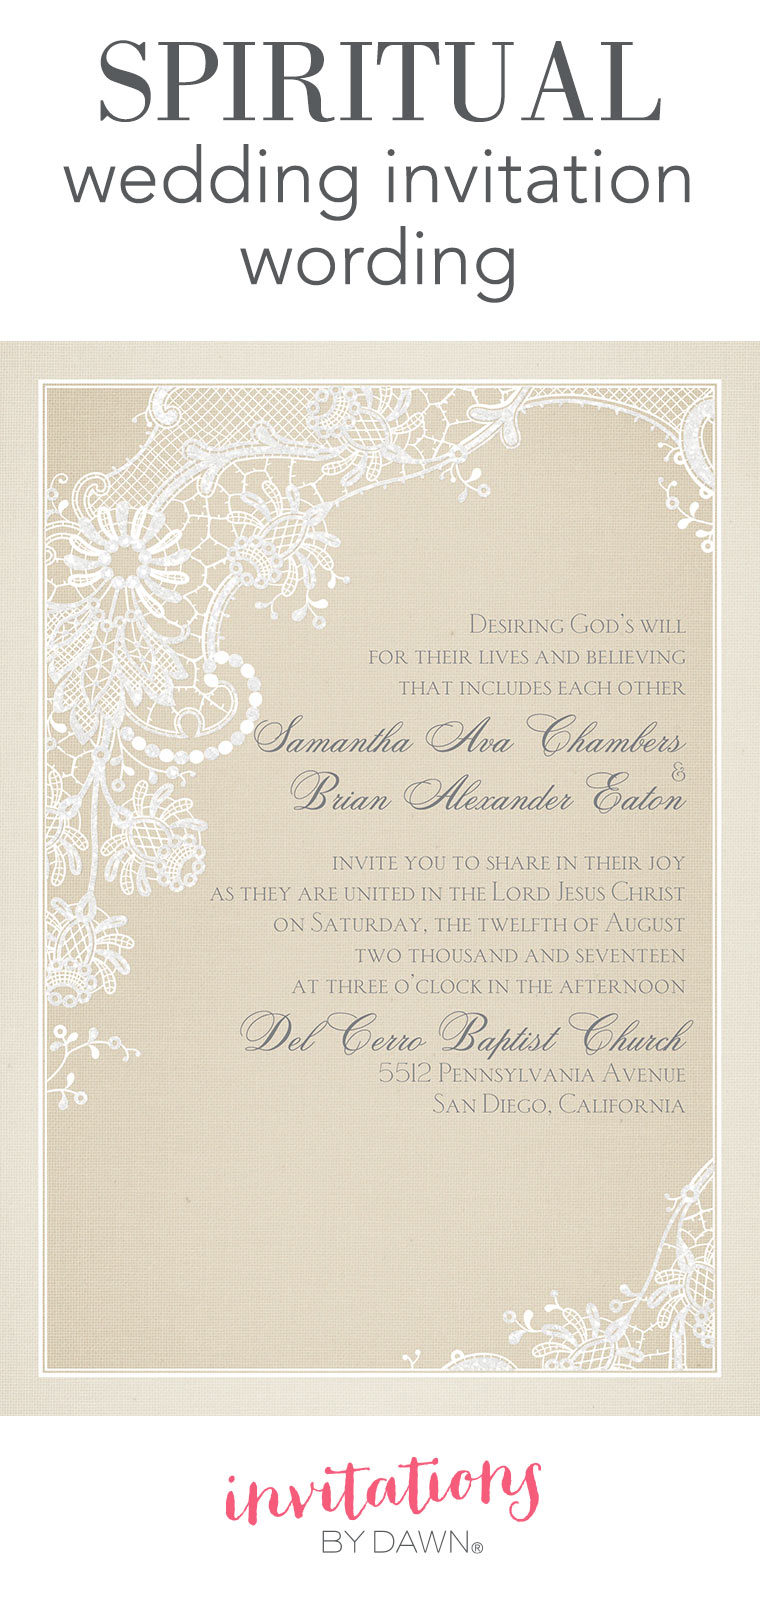 Spiritual wedding invitation wording invitations by dawn filmwisefo